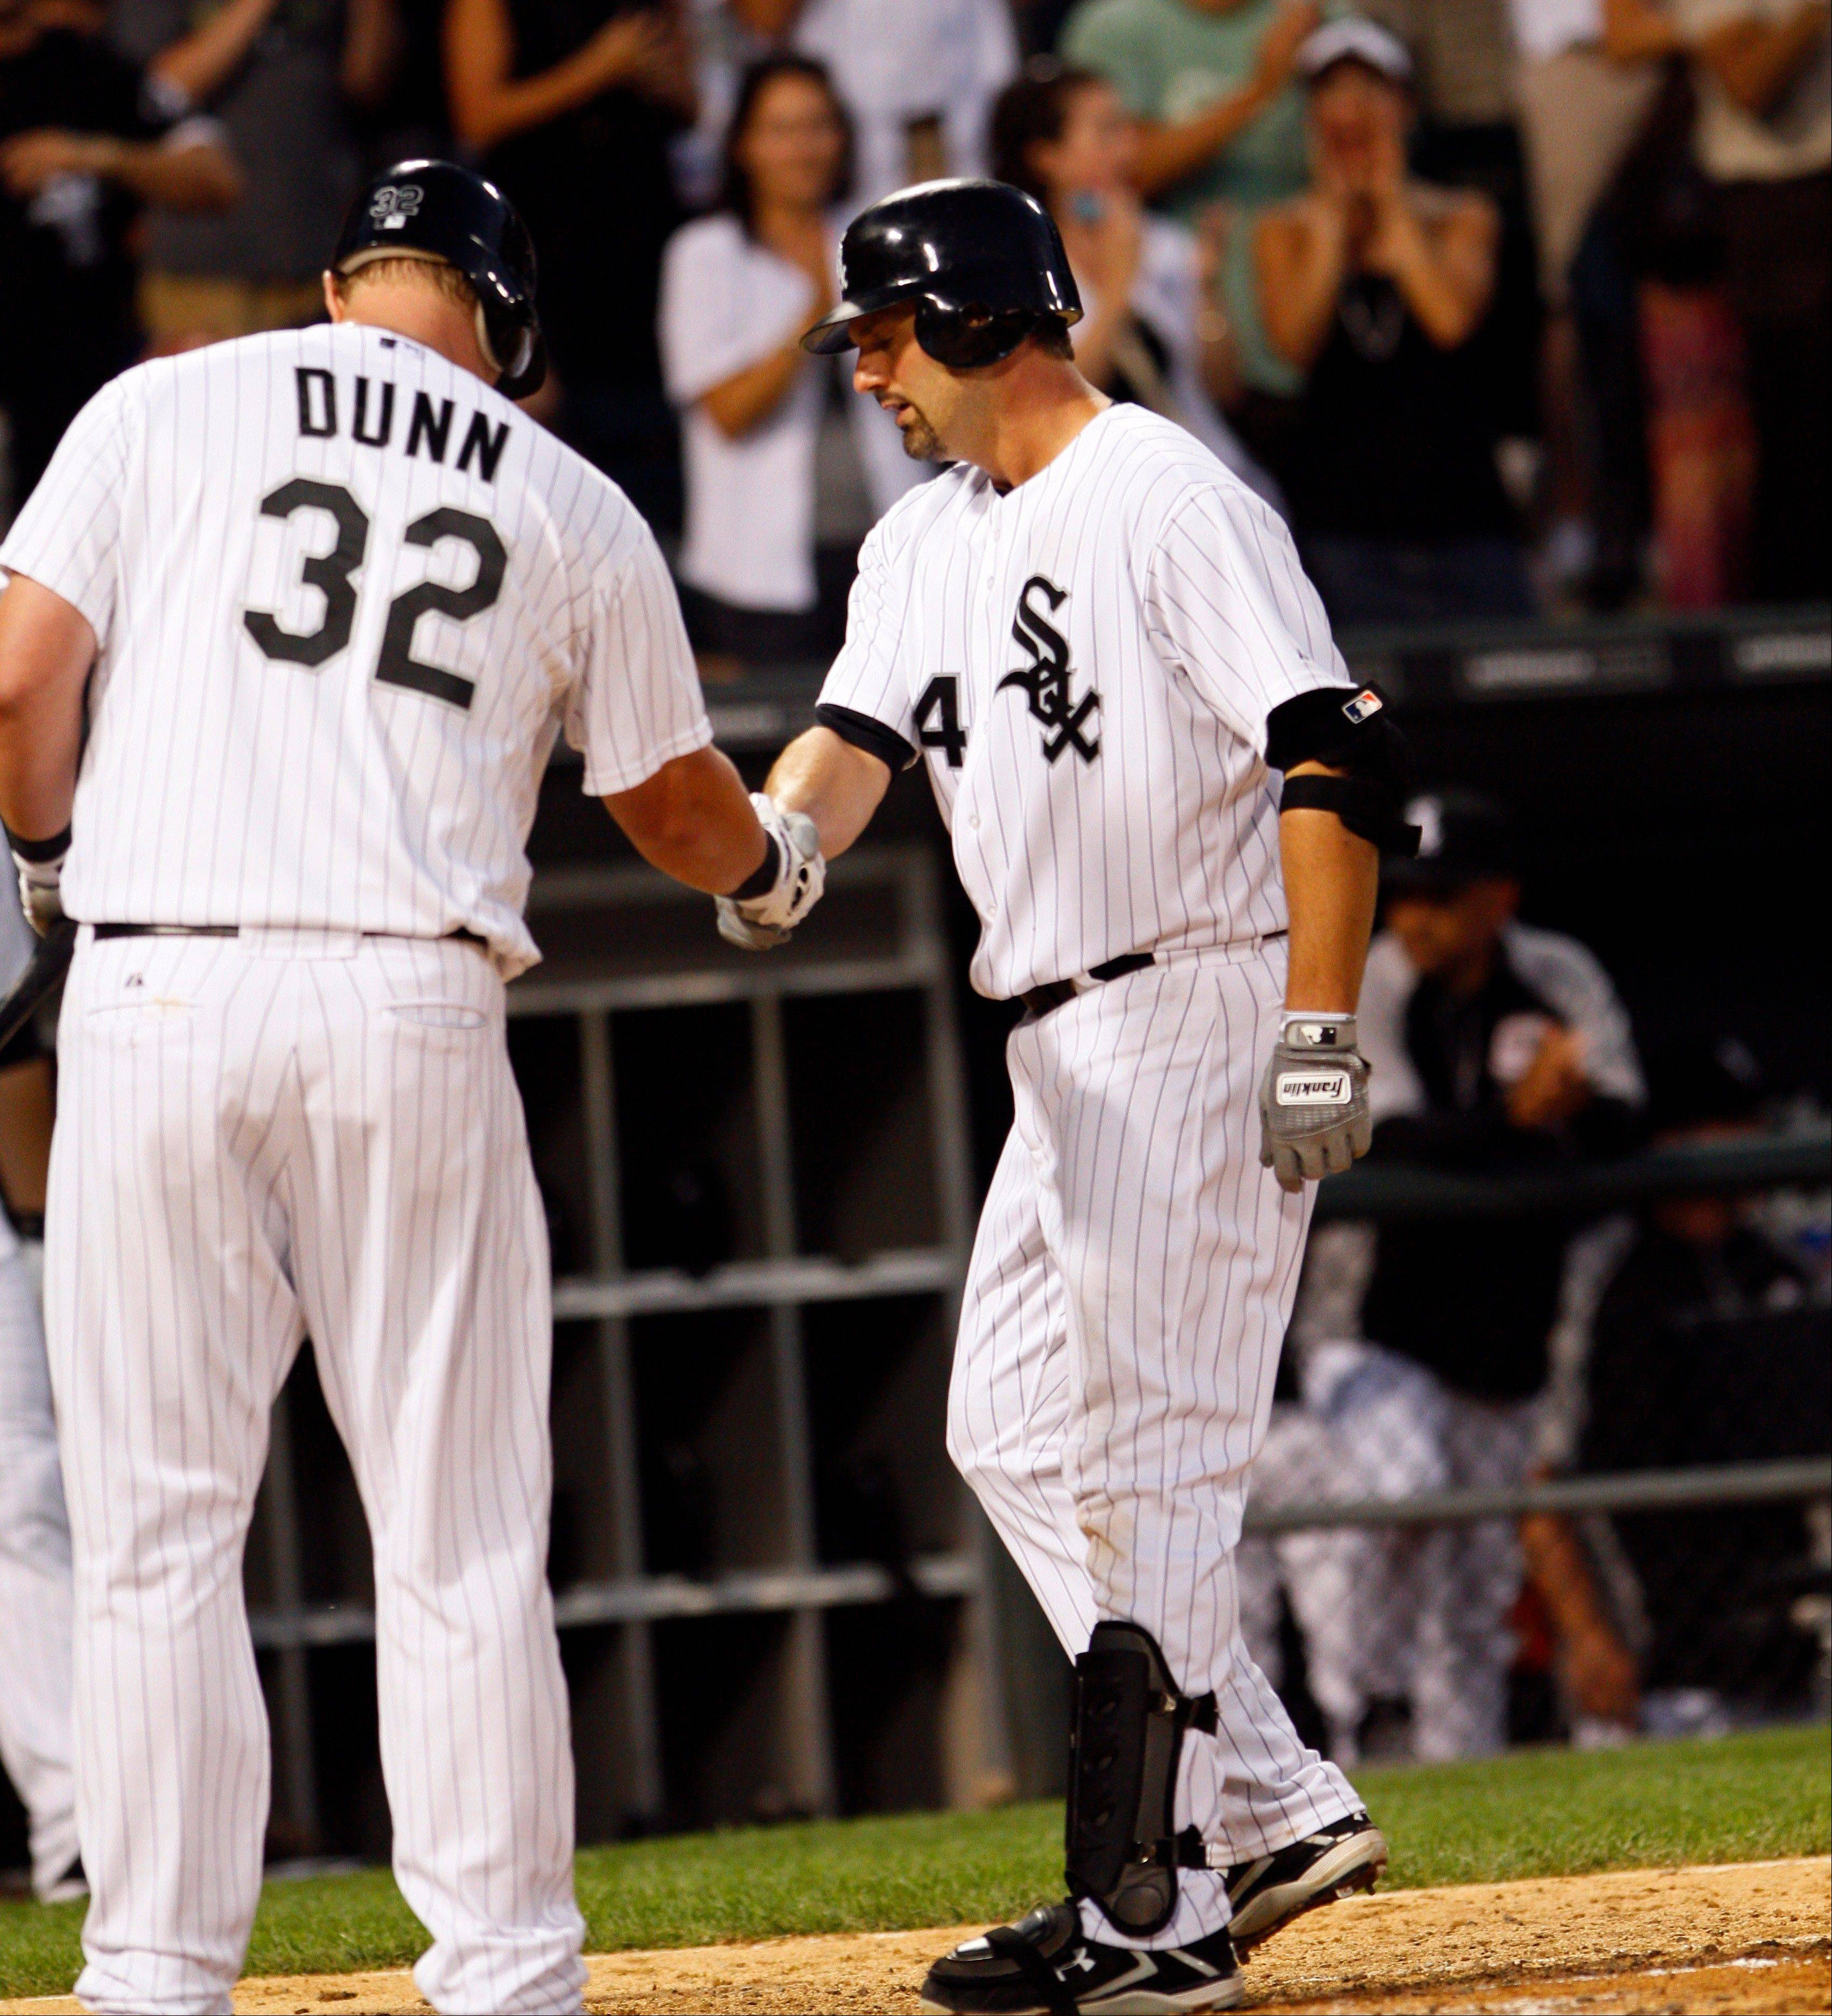 The White Sox's Paul Konerko, right, gets a handshake from teammate Adam Dunn after hitting a solo home run in the seventh inning against Red Sox on Saturday night at U.S. Cellular Field.